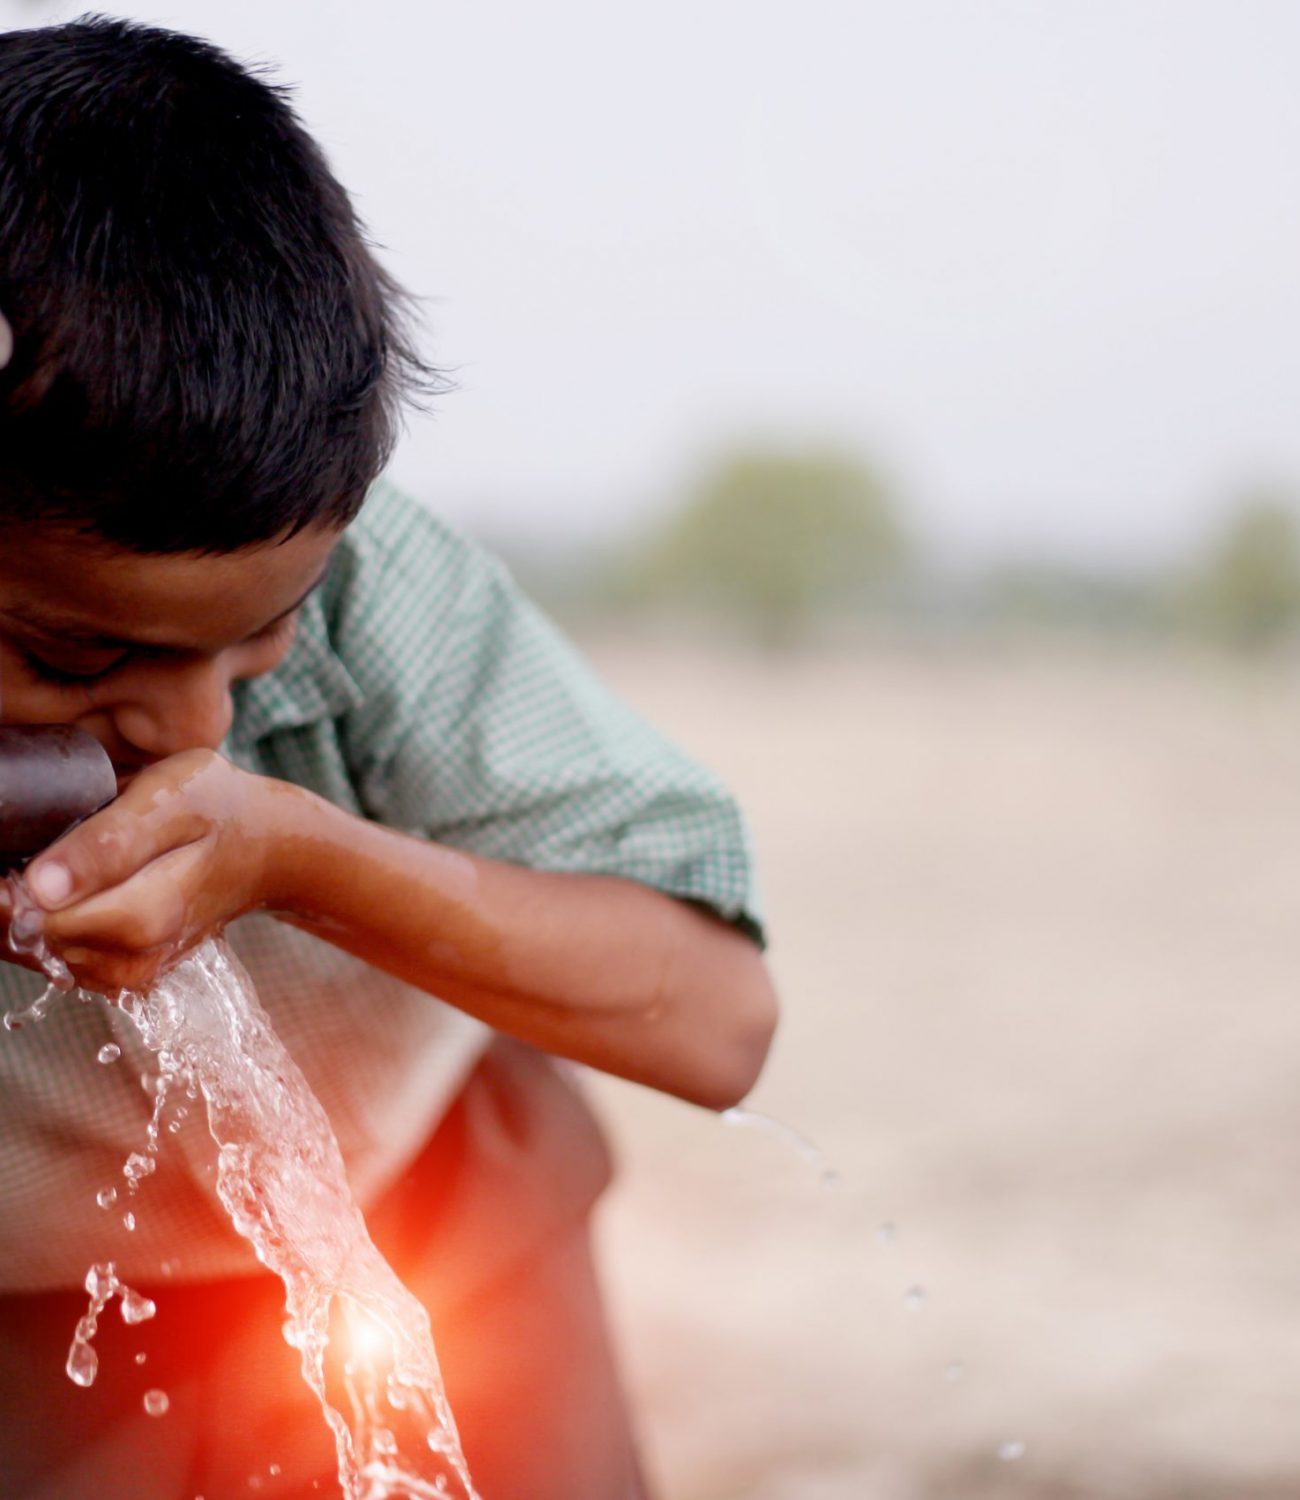 Thirsty child drinking water on water pump.